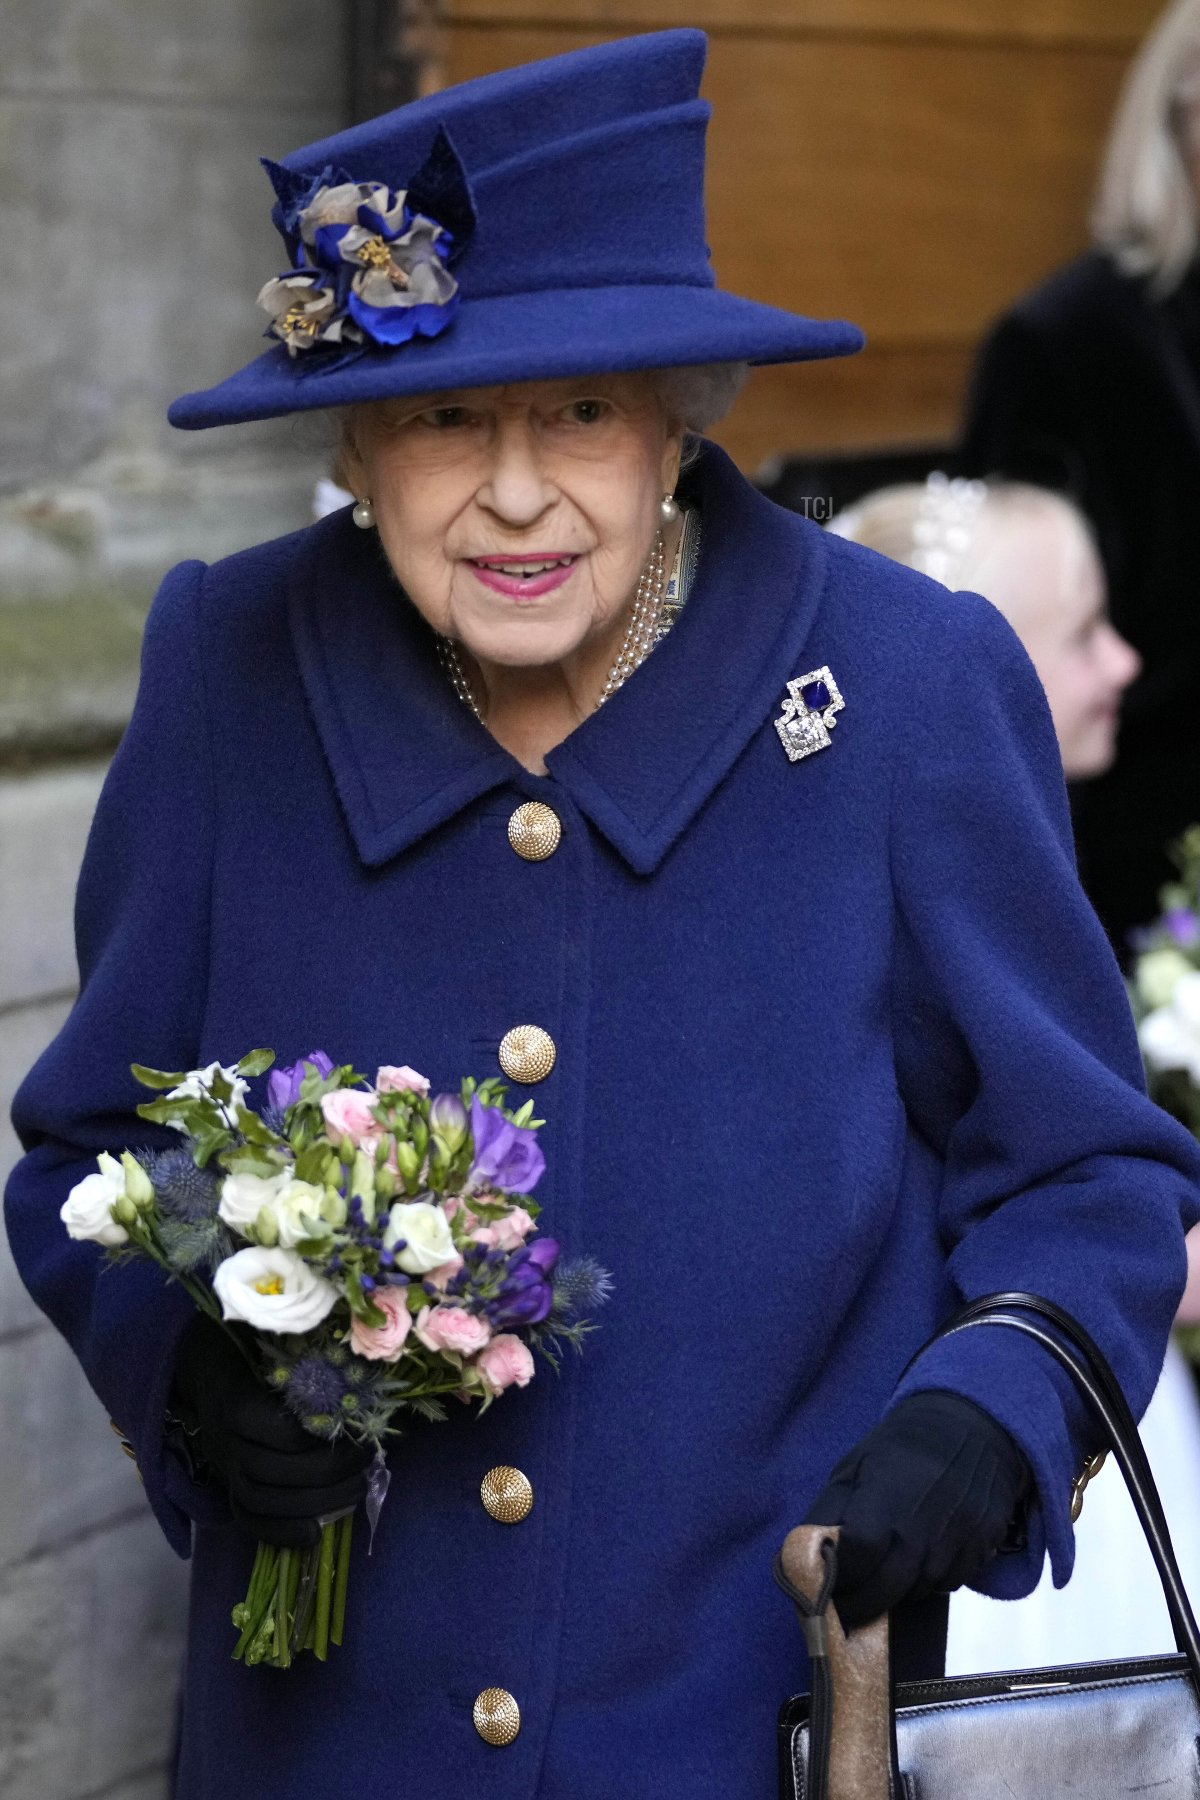 Queen Elizabeth II attends a service of Thanksgiving to mark the centenary of The Royal British Legion at Westminster Abbey on October 12, 2021 in London, England